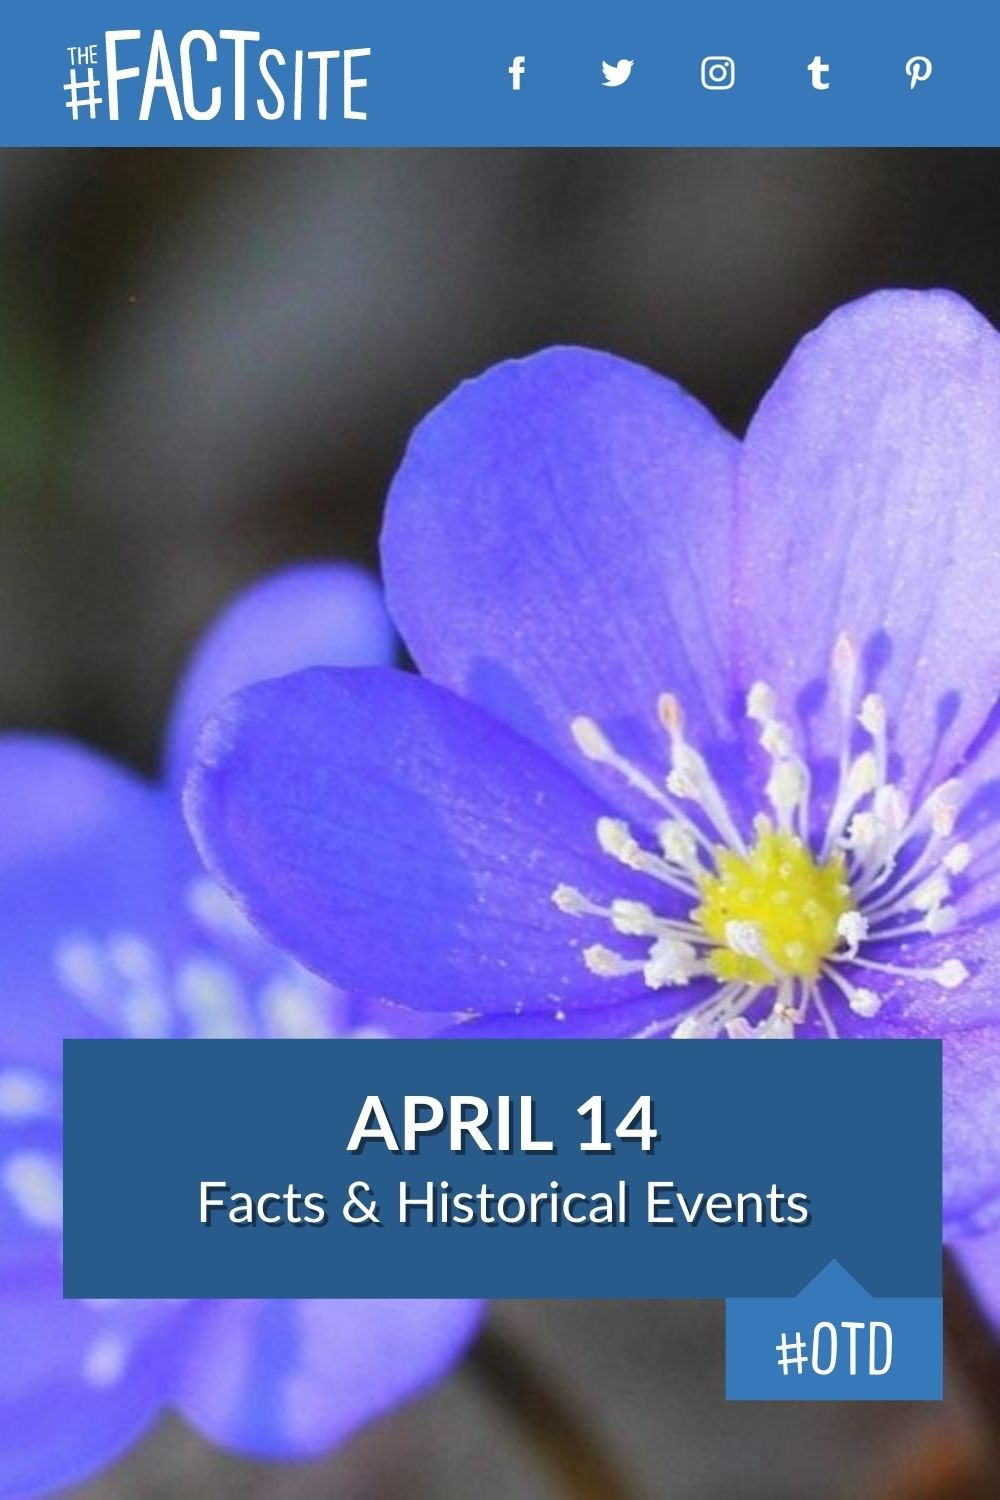 Facts & Historic Events That Happened on April 14